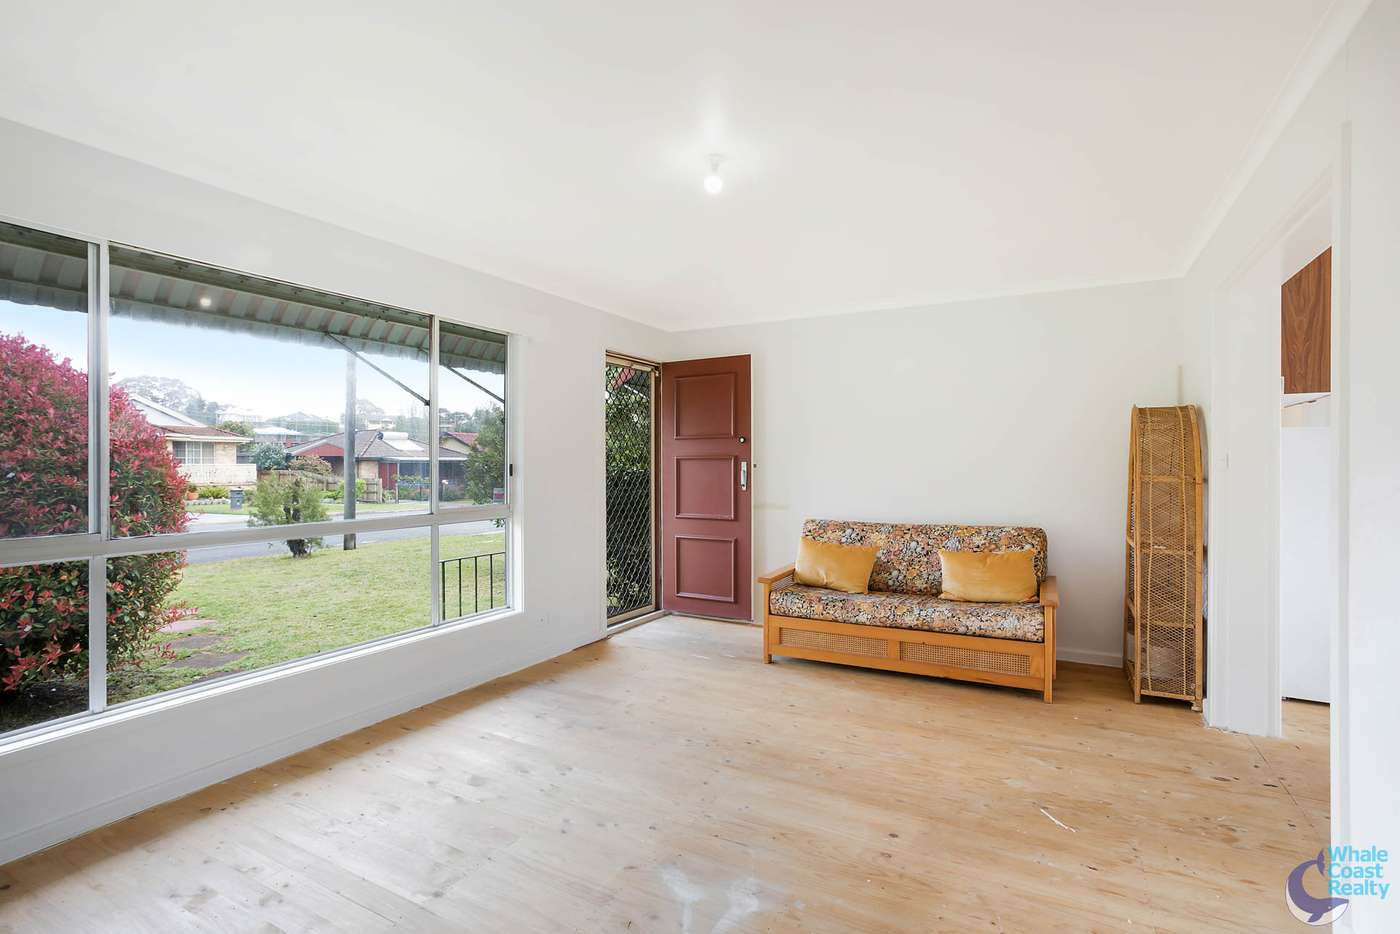 Fifth view of Homely house listing, 2 Hyland Avenue, Narooma NSW 2546